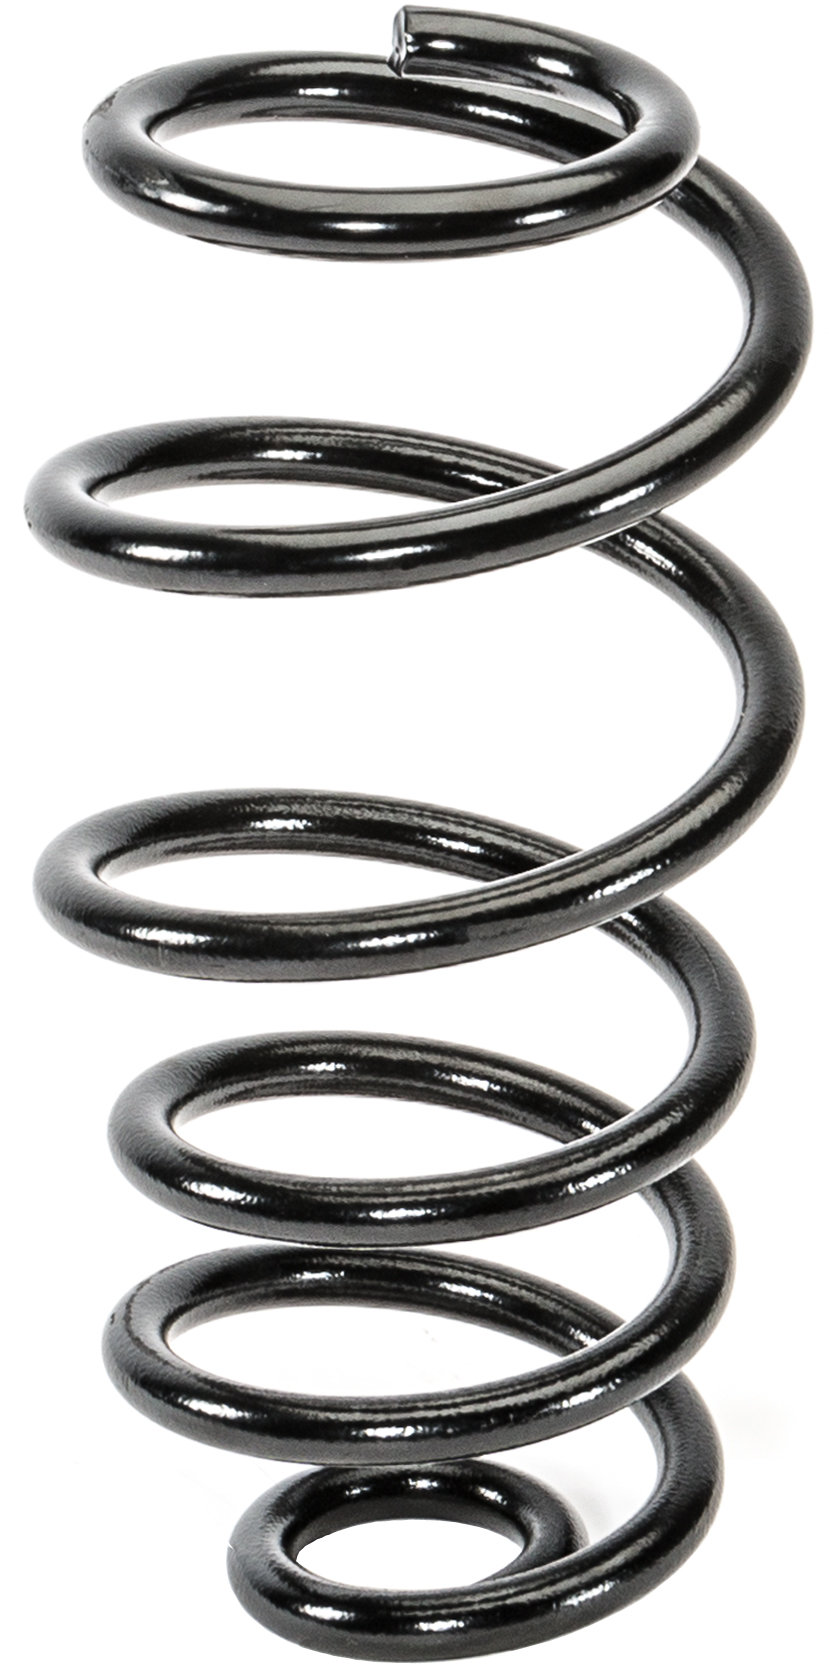 Mopar 68004459AA Heavy Duty Rear Coil Spring for 07-18